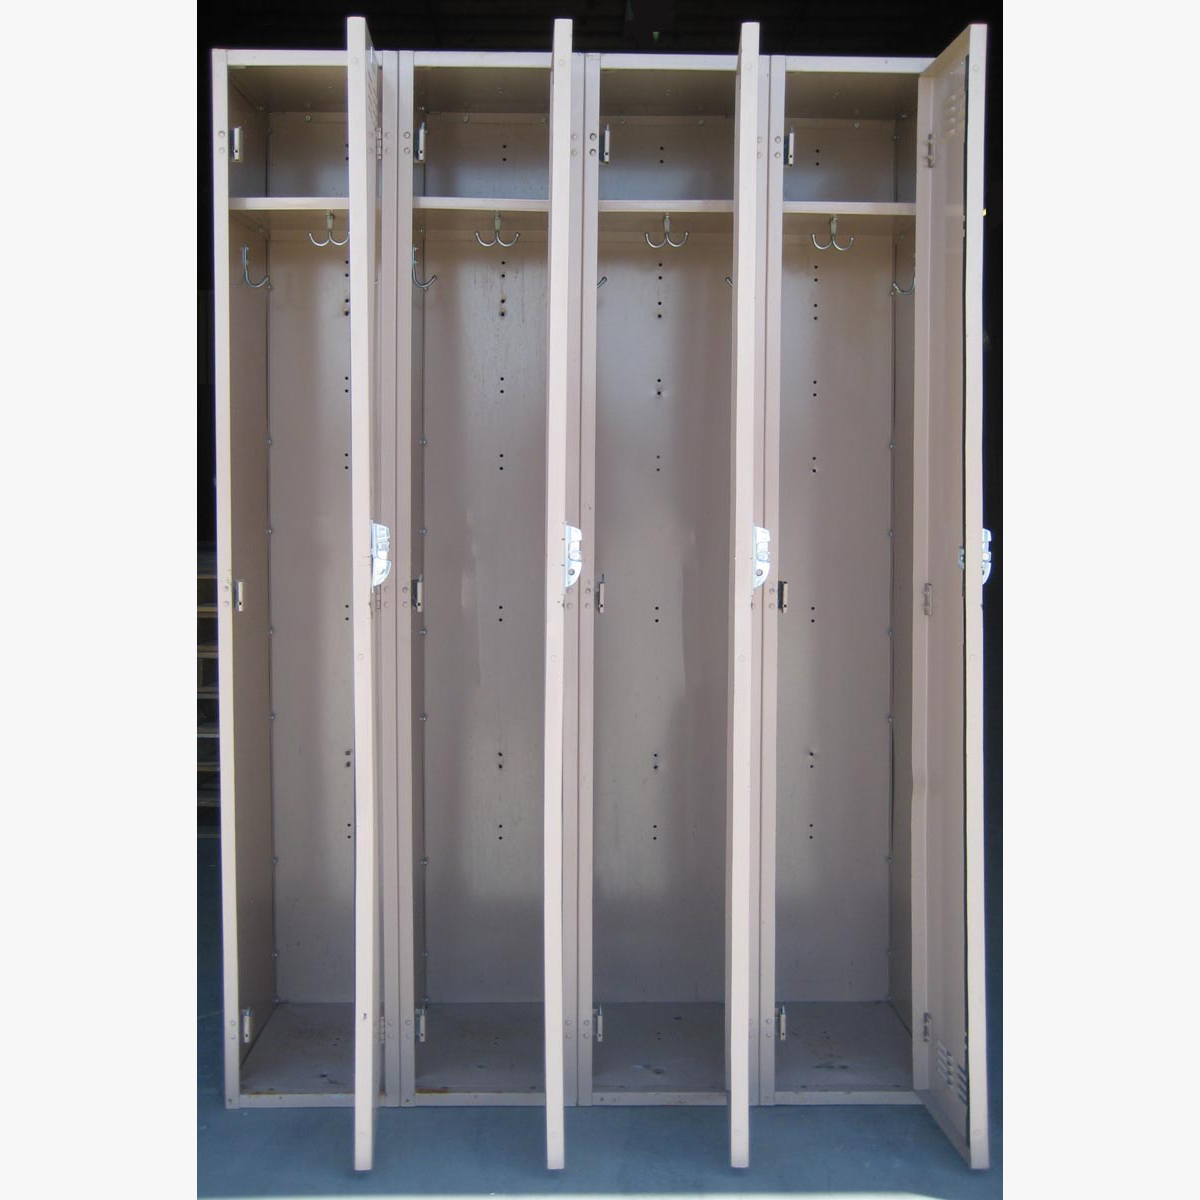 Single Tier Metal Storage Lockersimage 3 image 3